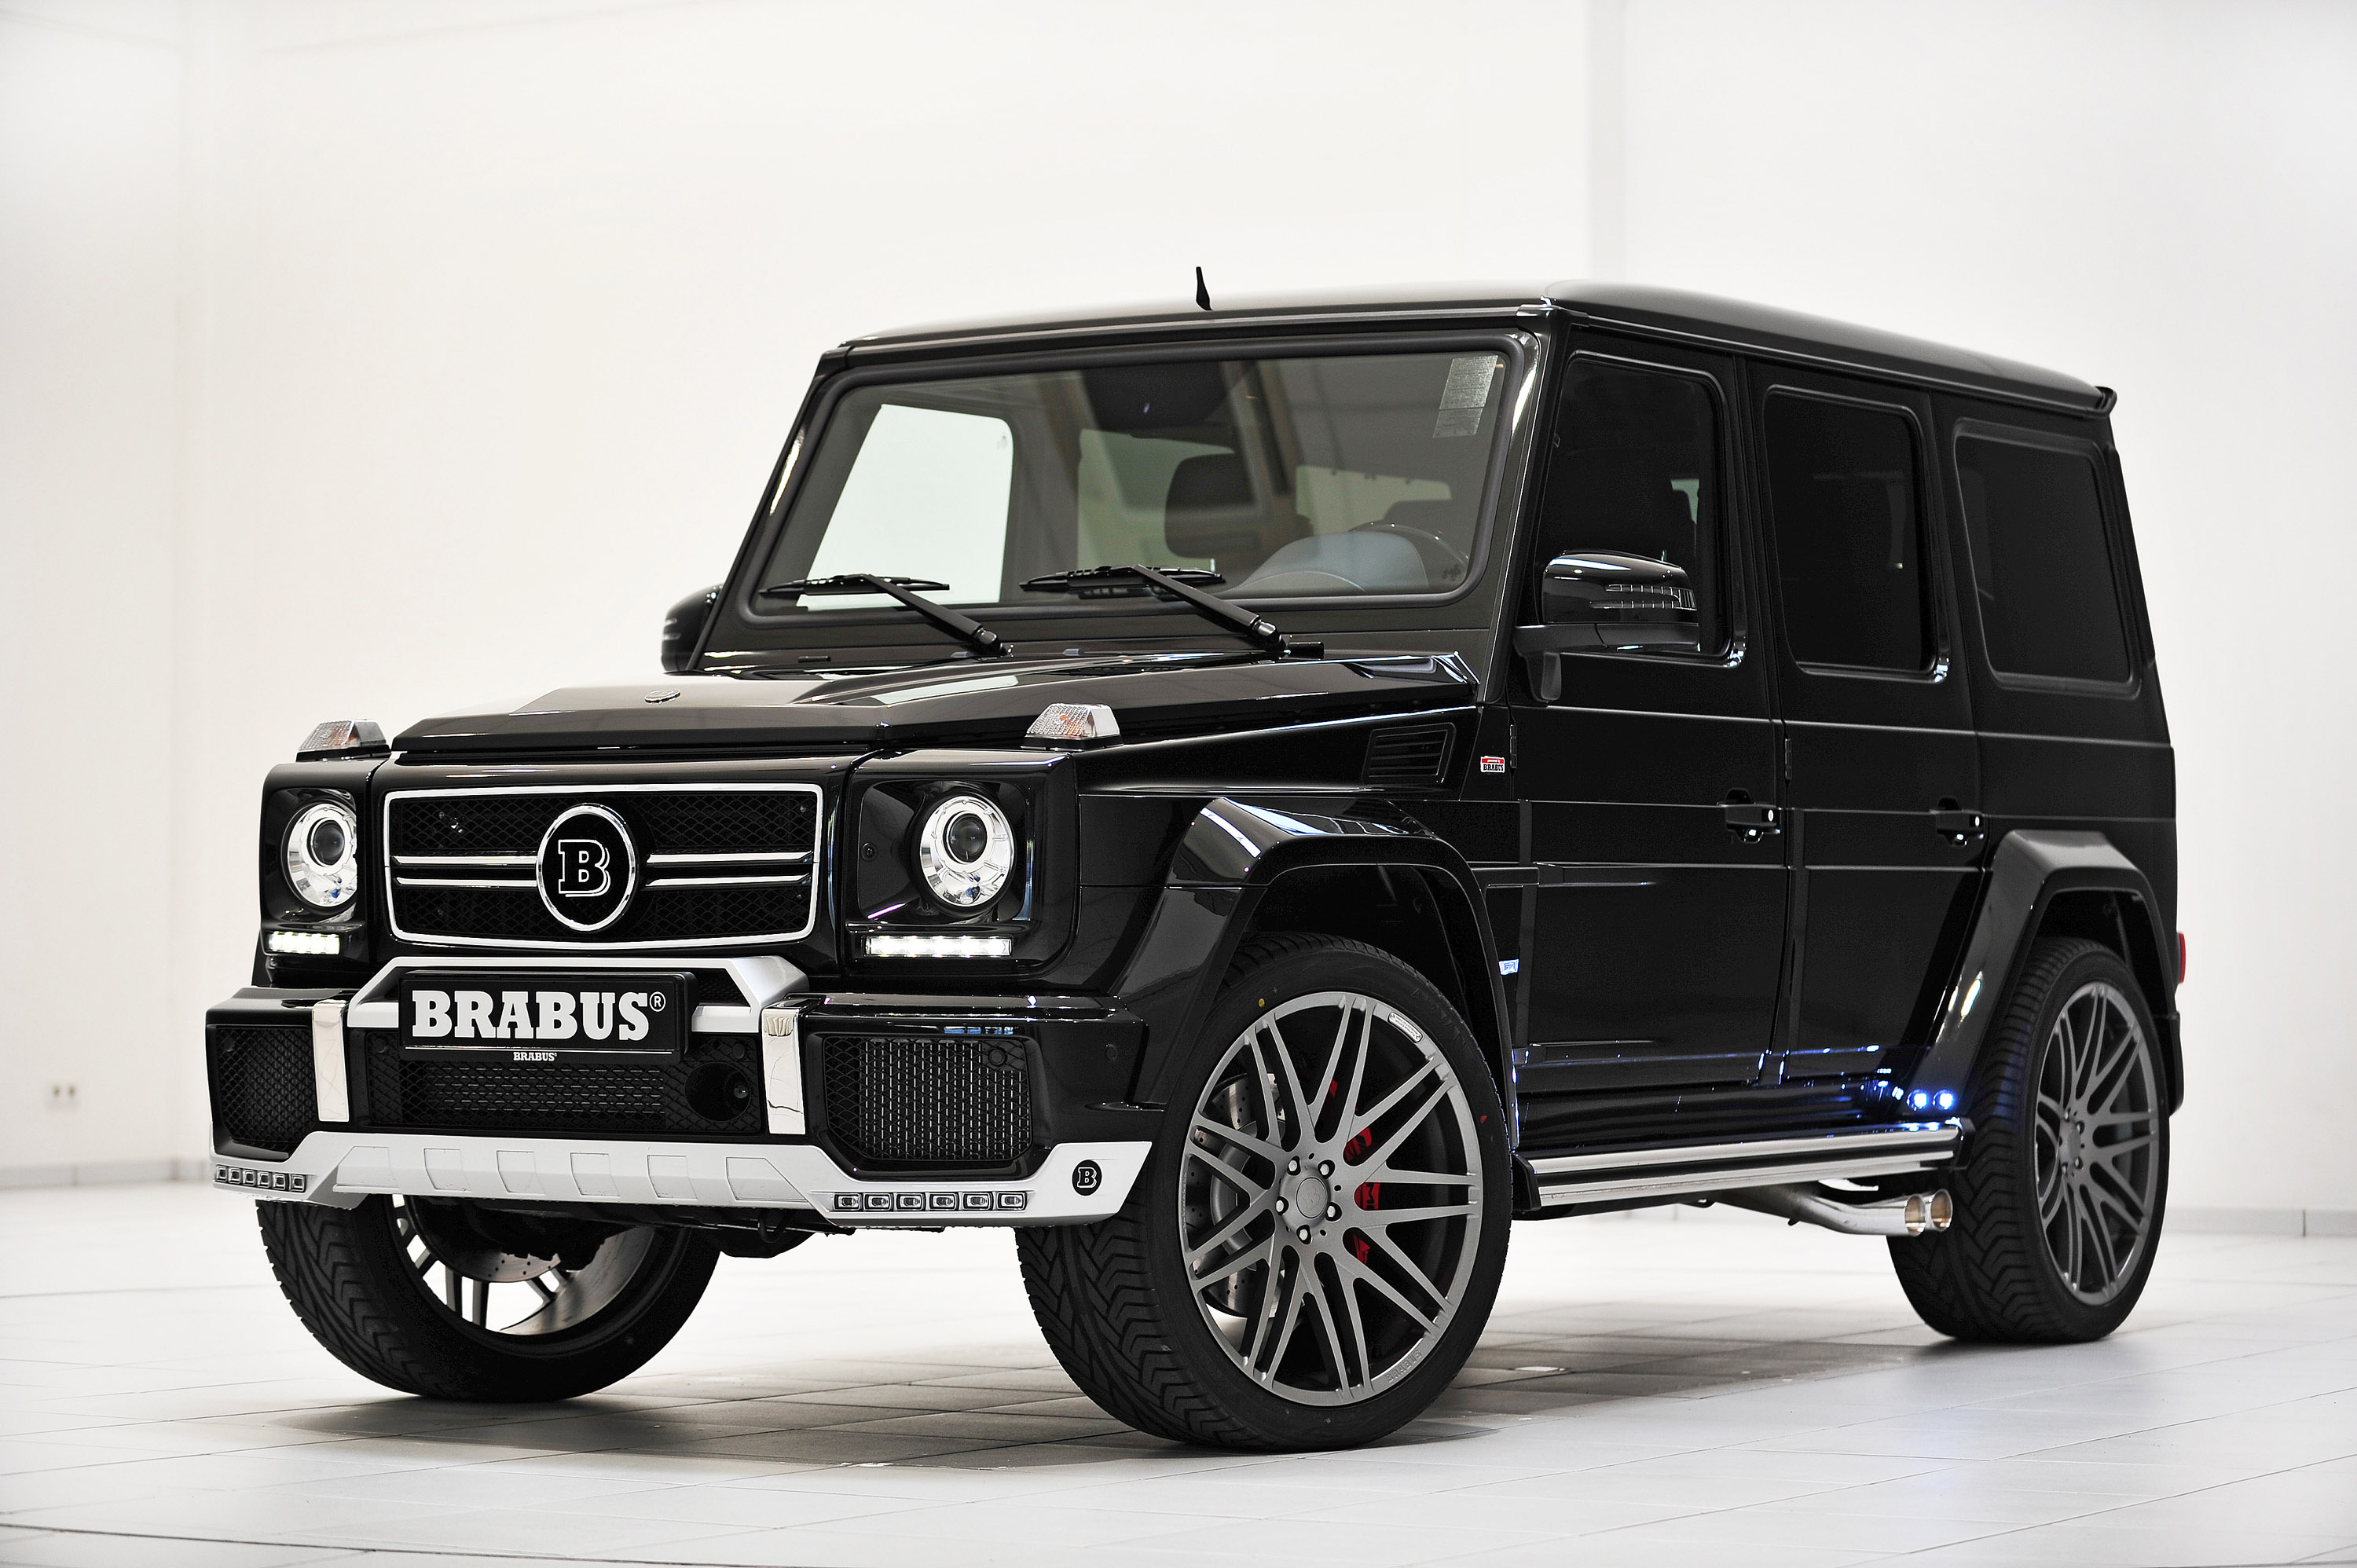 brabus 2012 mercedes g 63 amg. Black Bedroom Furniture Sets. Home Design Ideas